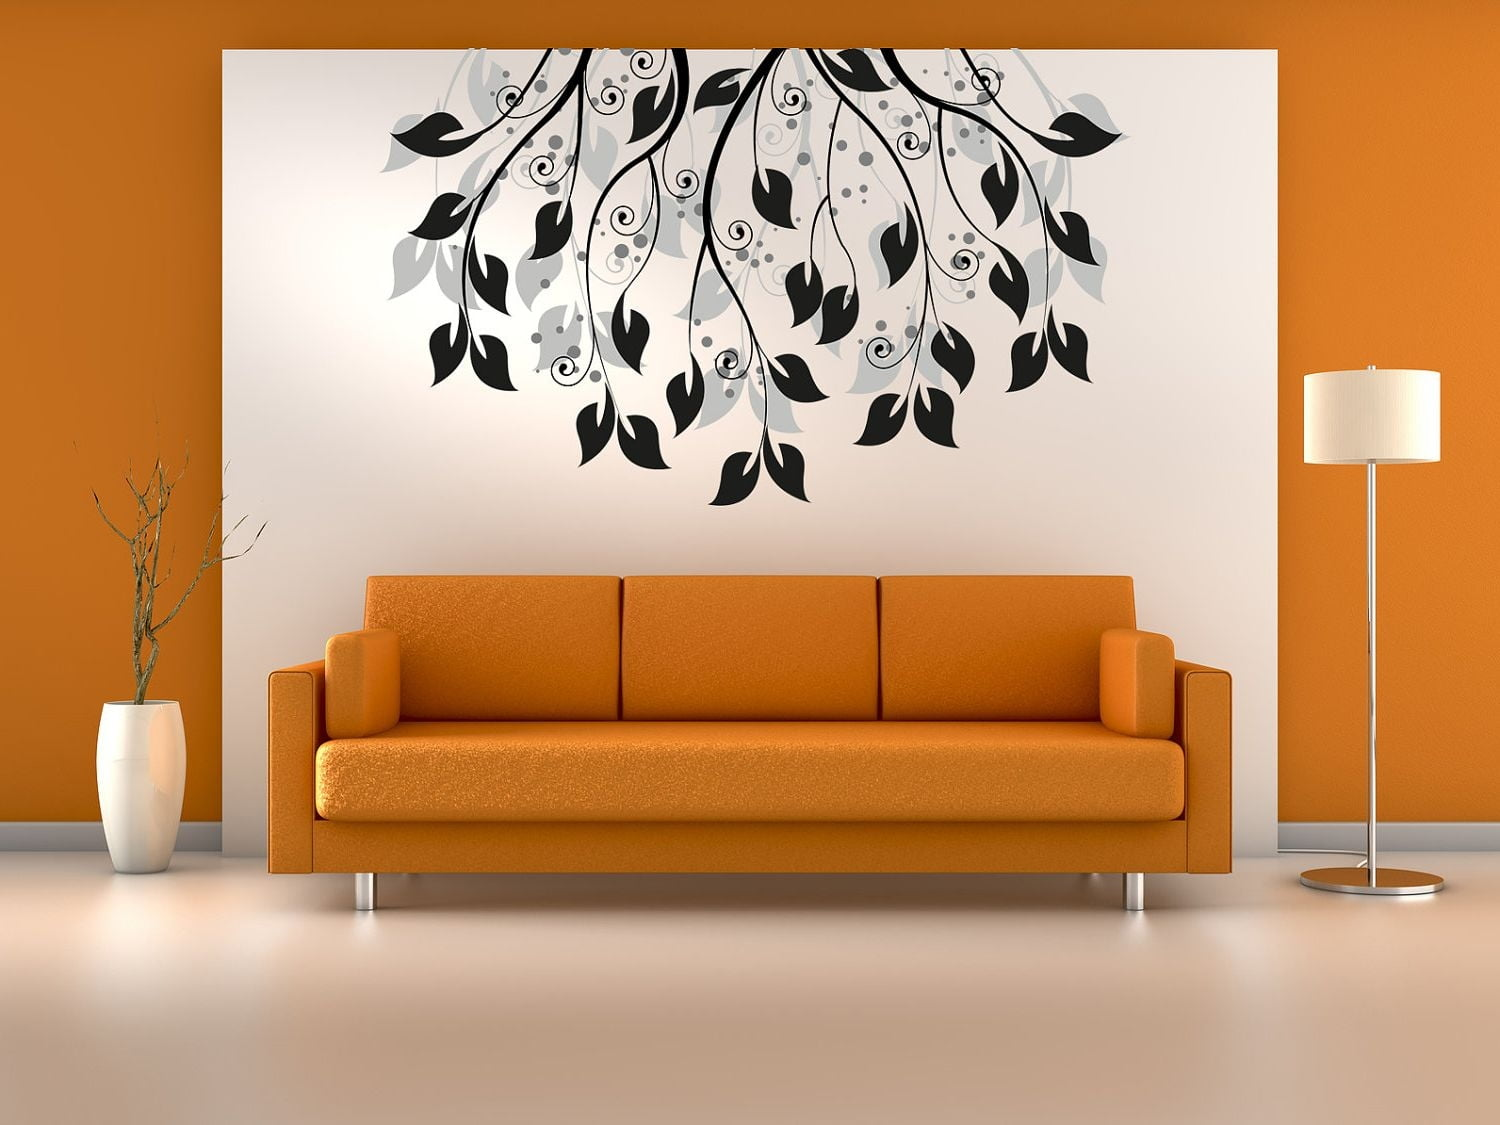 Bedroom wall art designs - Wall Art Room Decor Modern Wall Art Ideas